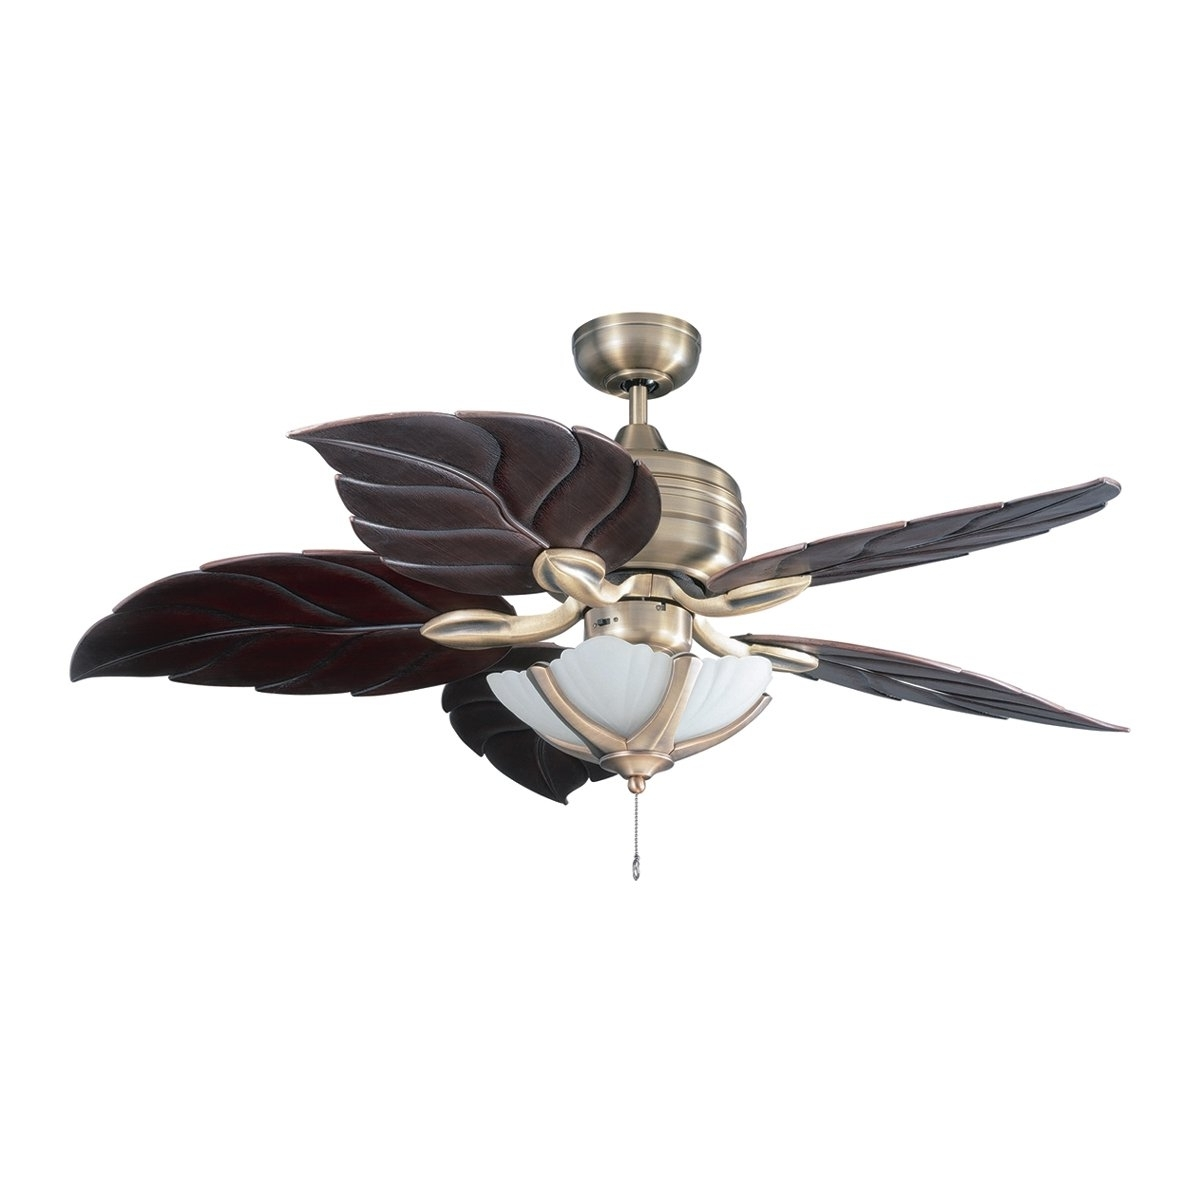 Ceiling Fans : Fancy Leaf Ceiling Fan With Light For Your Kit Baby Intended For Well Known Outdoor Ceiling Fans With Tropical Lights (Gallery 15 of 20)